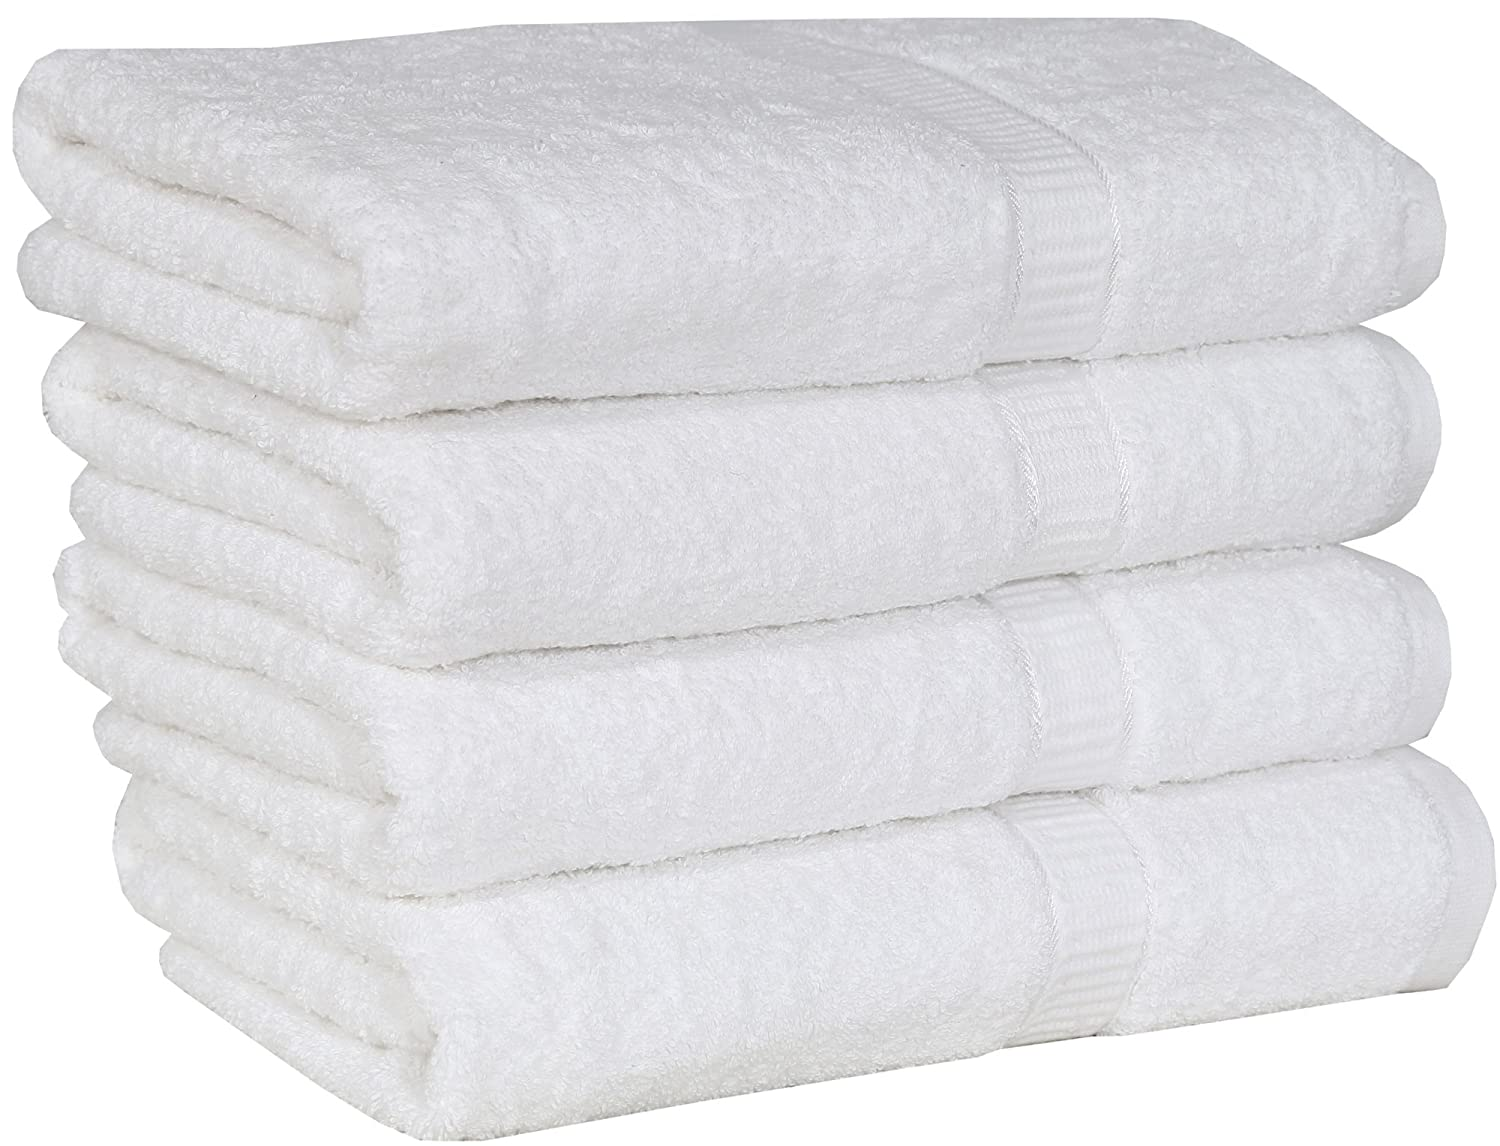 Amazon.com: Utopia Extra Thick and Plush Bath Towels - White - Pack ...